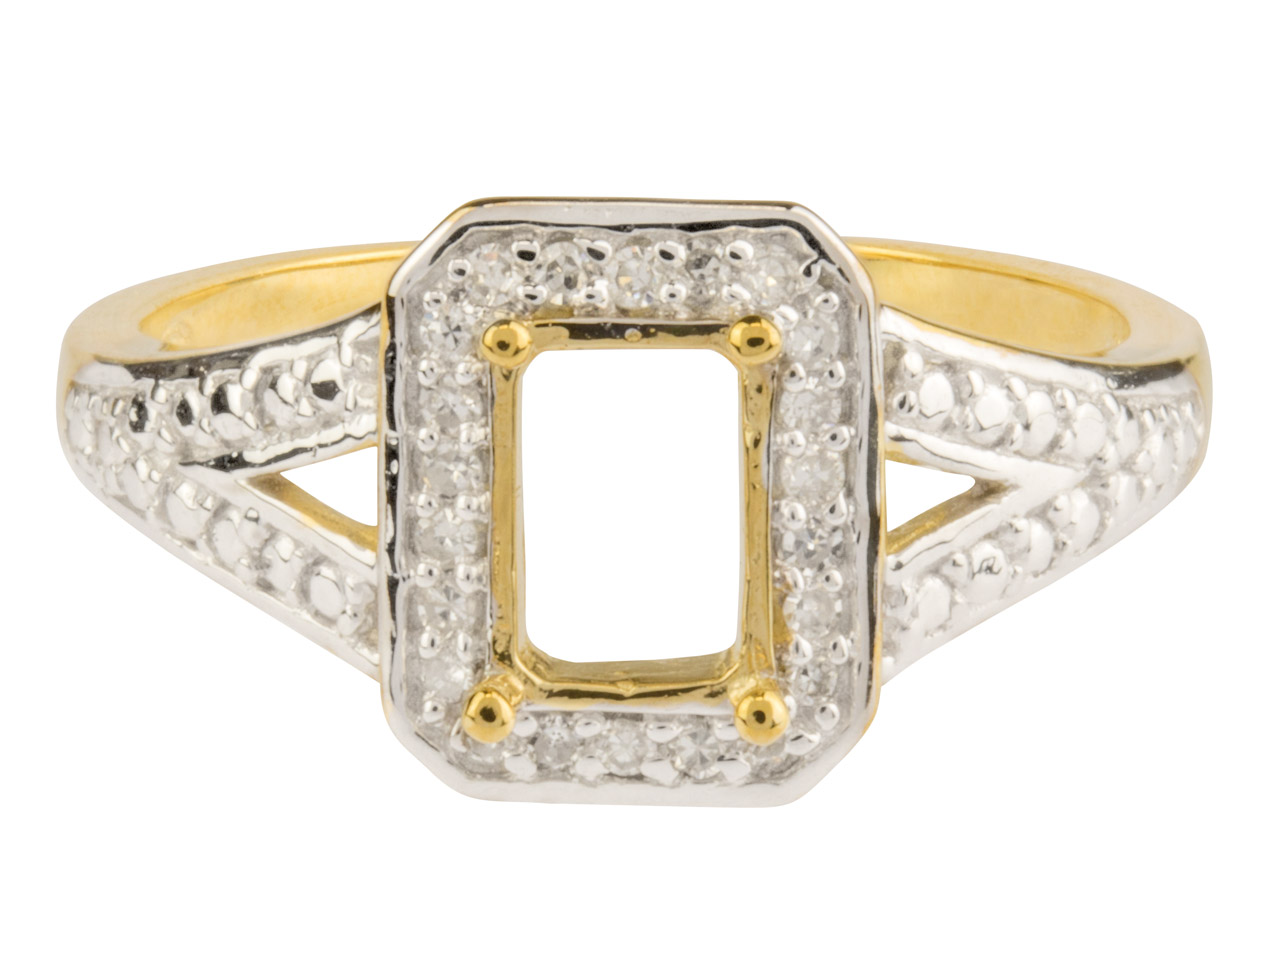 9ct Yellow Semi Set Diamond Ring   Mount Hallmarked 22 Round Total    0.10ct Centre To Accommodate 7x5mm Octagonal